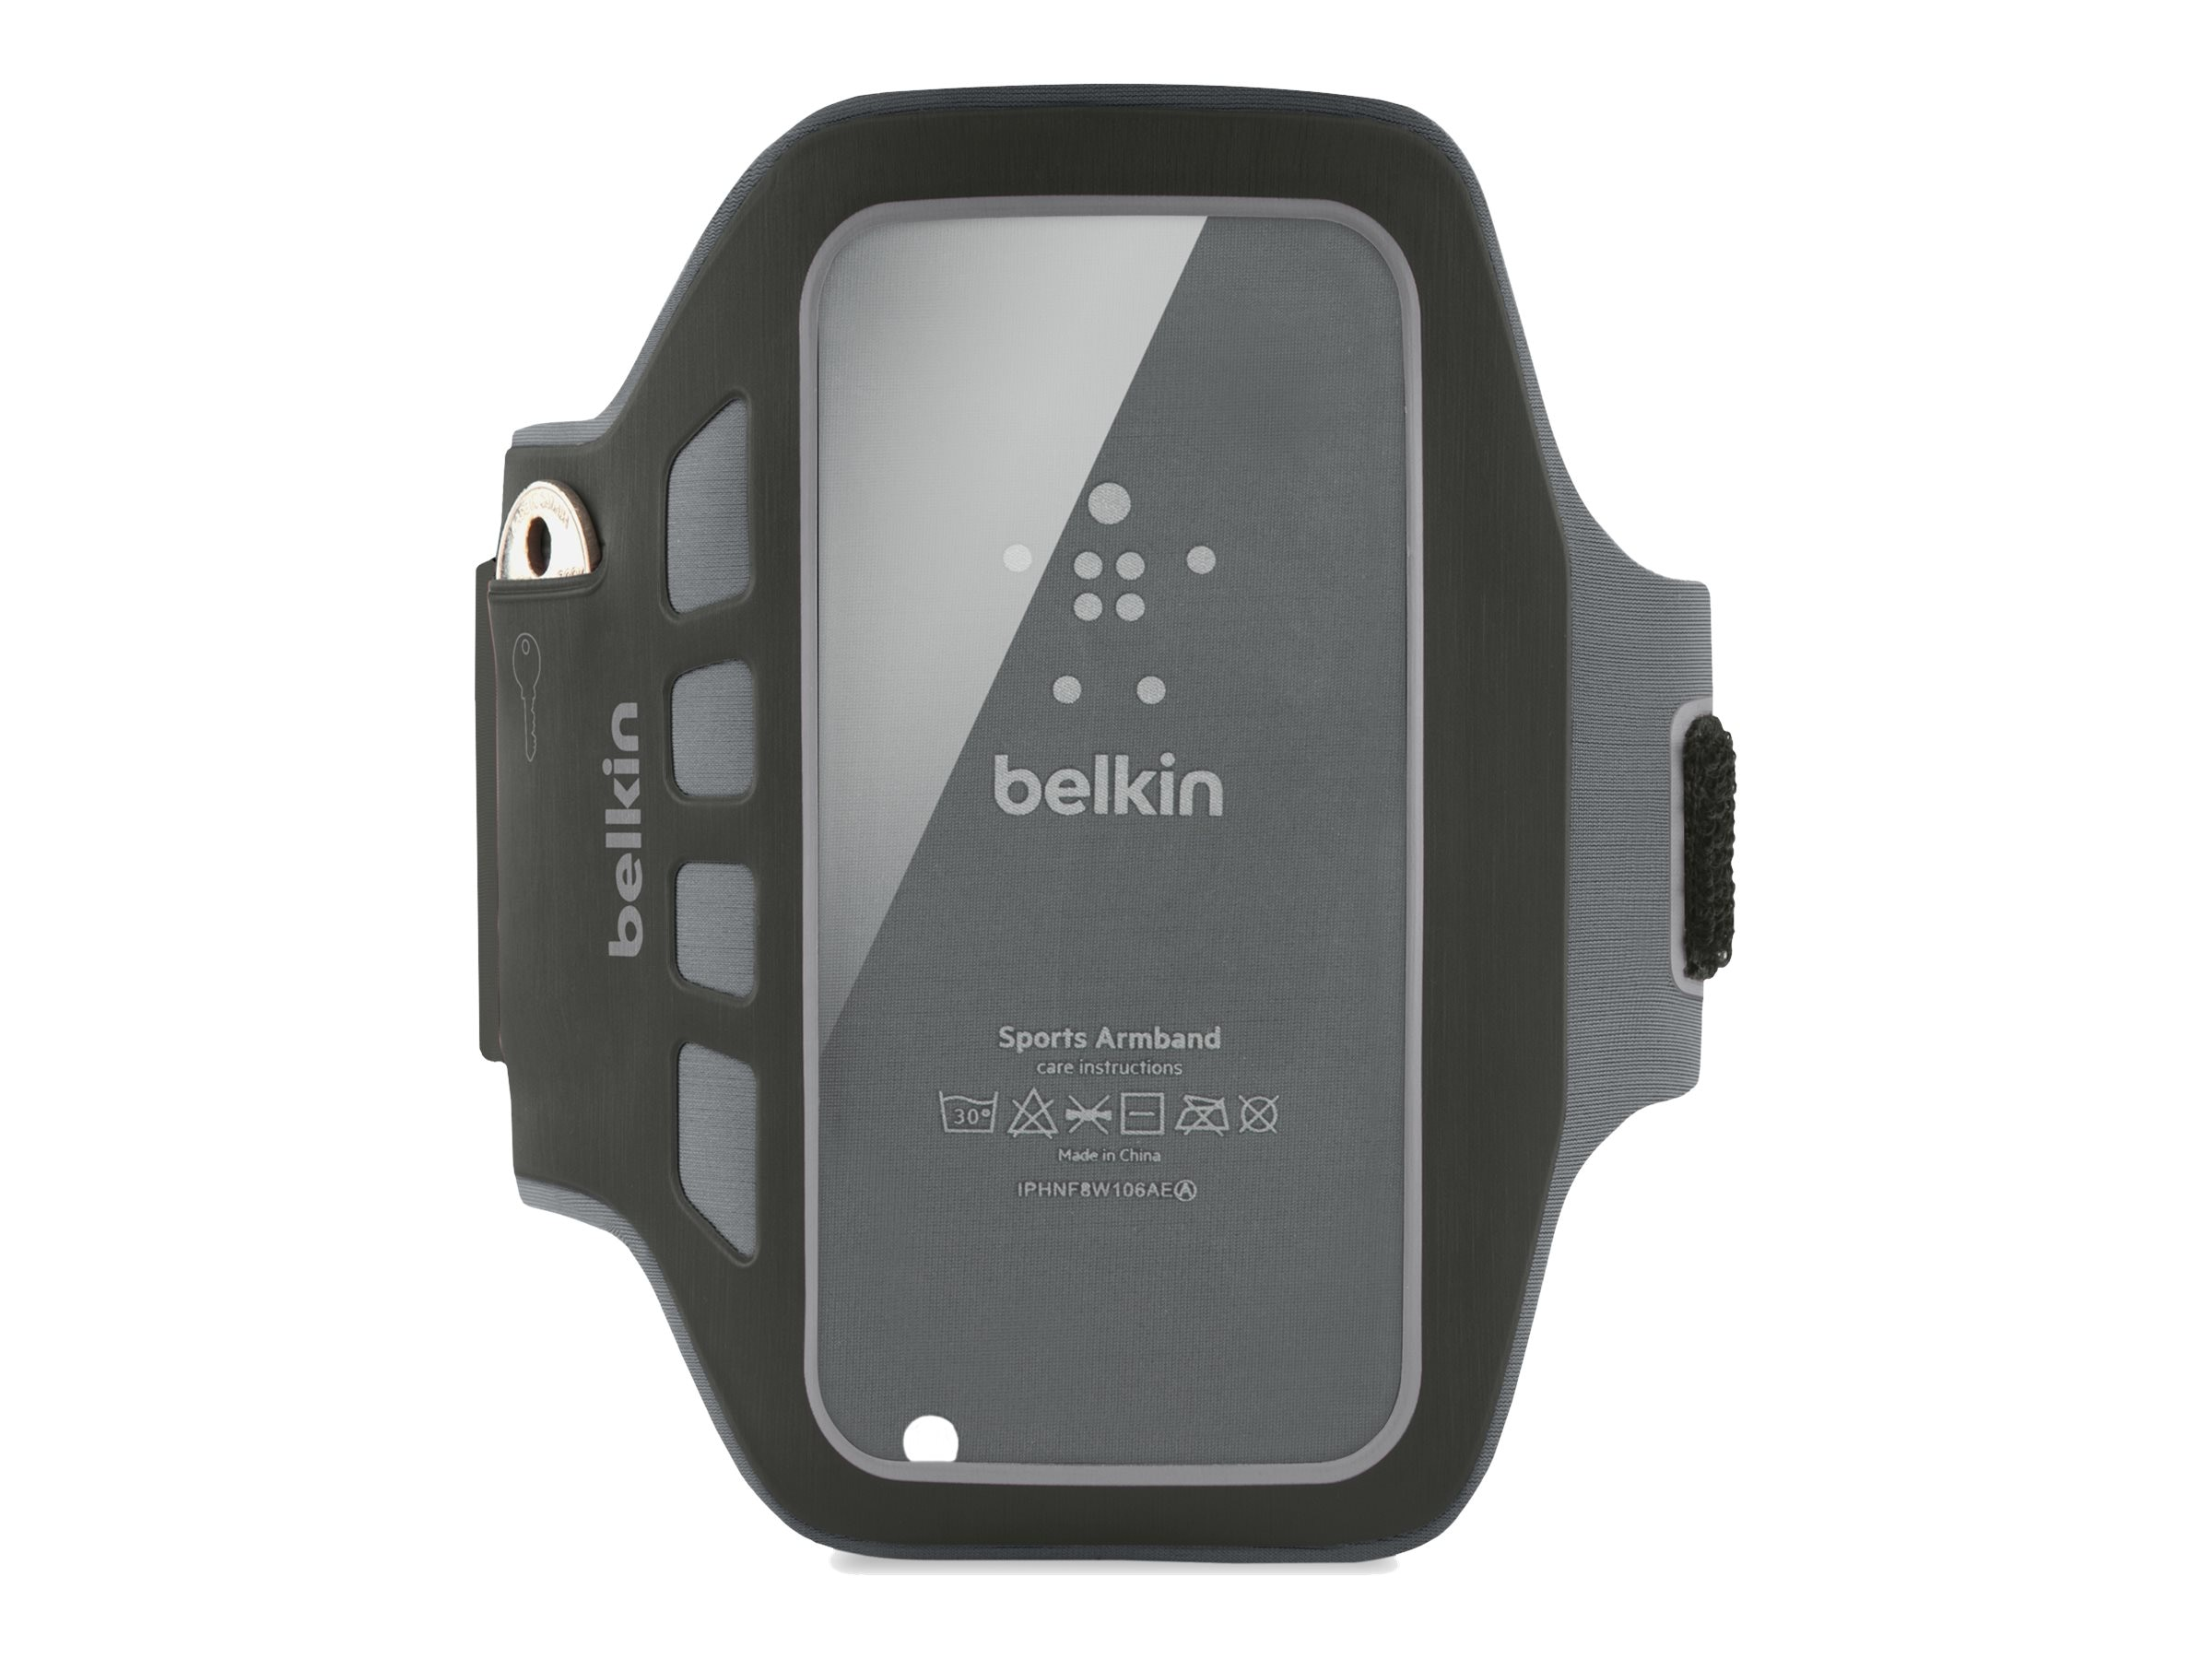 Belkin Ease-Fit Plus Armband, Blacktop for iPhone5